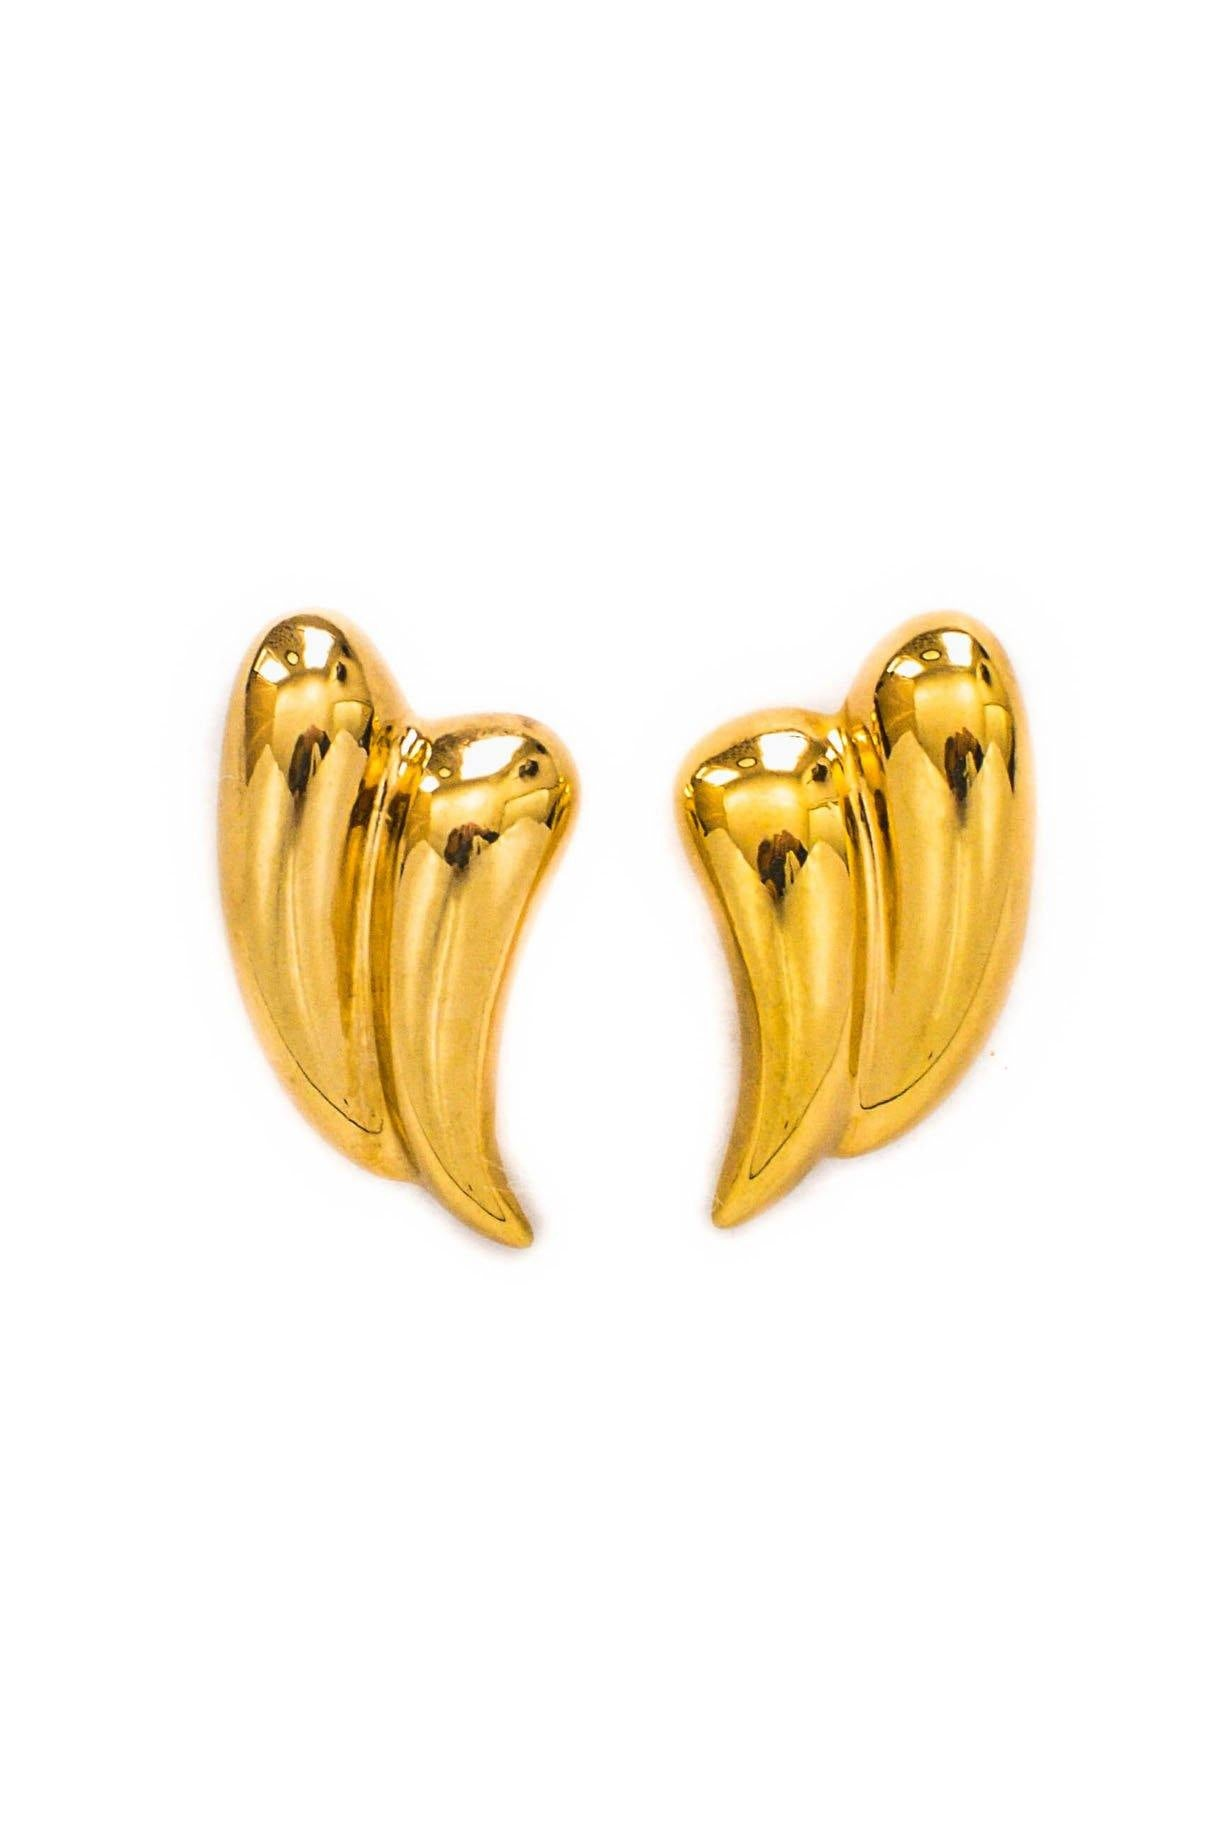 Vintage Swooping Pierced Earrings from Sweet and Spark